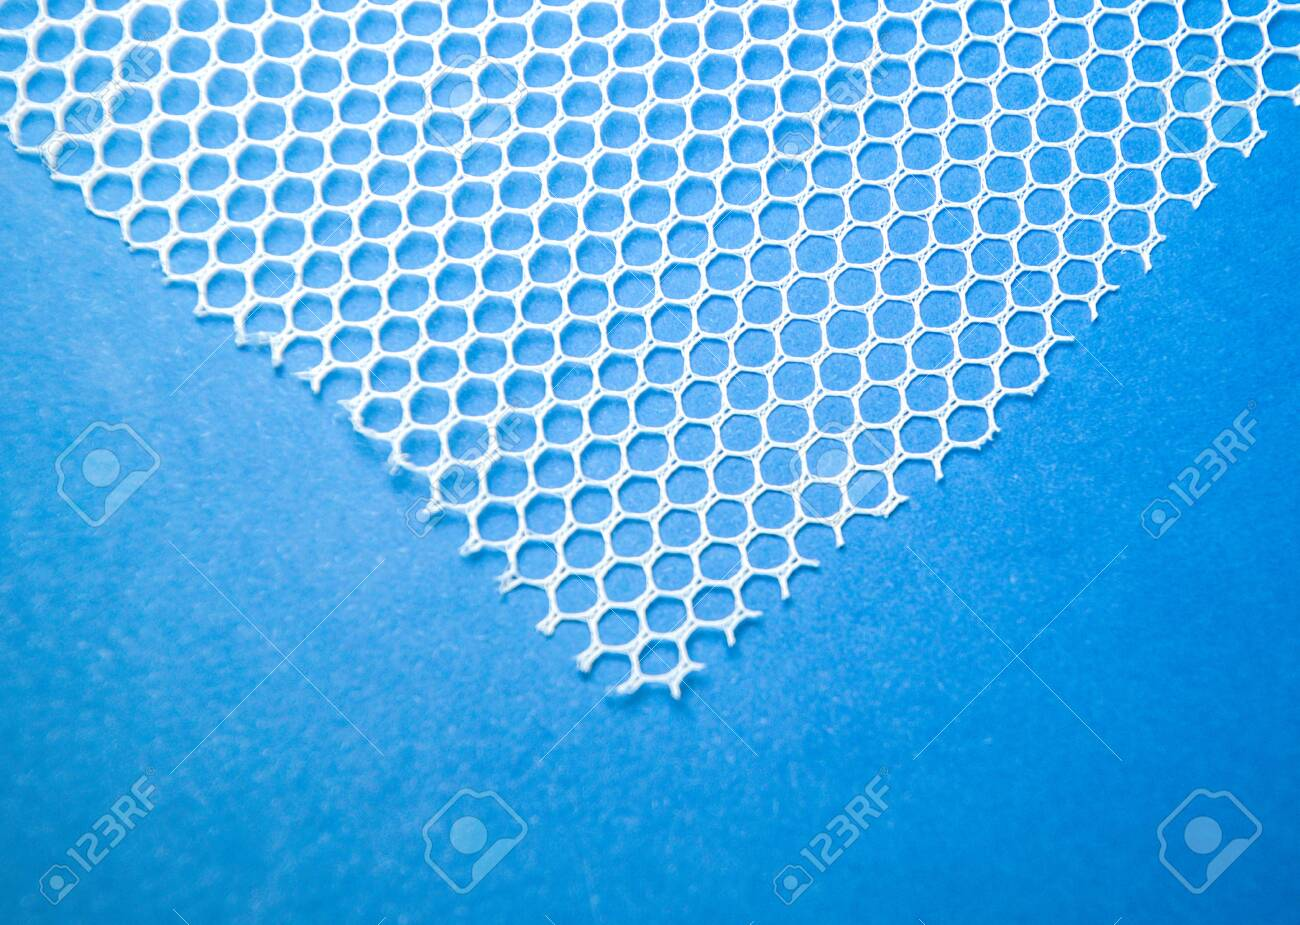 Surgical Mesh is seen as an International problem, being a very controversial way of repairing Hernias and Vaginal health issues. - 135420482